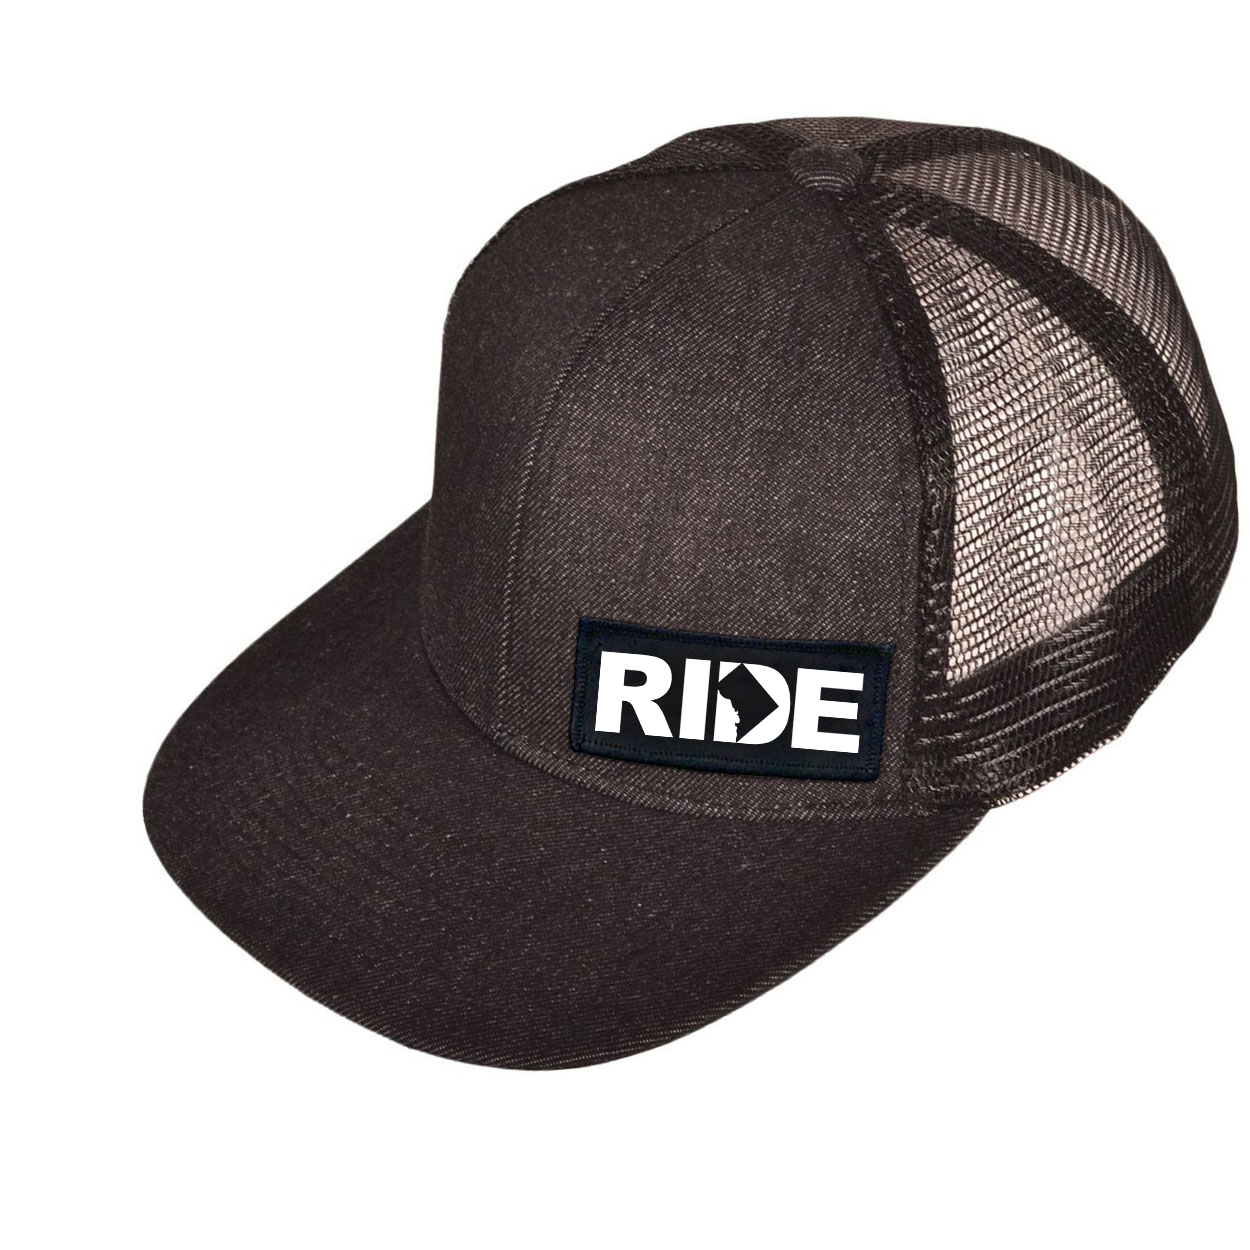 Ride District of Columbia Night Out Woven Patch Snapback Flat Brim Hat Black Denim (White Logo)